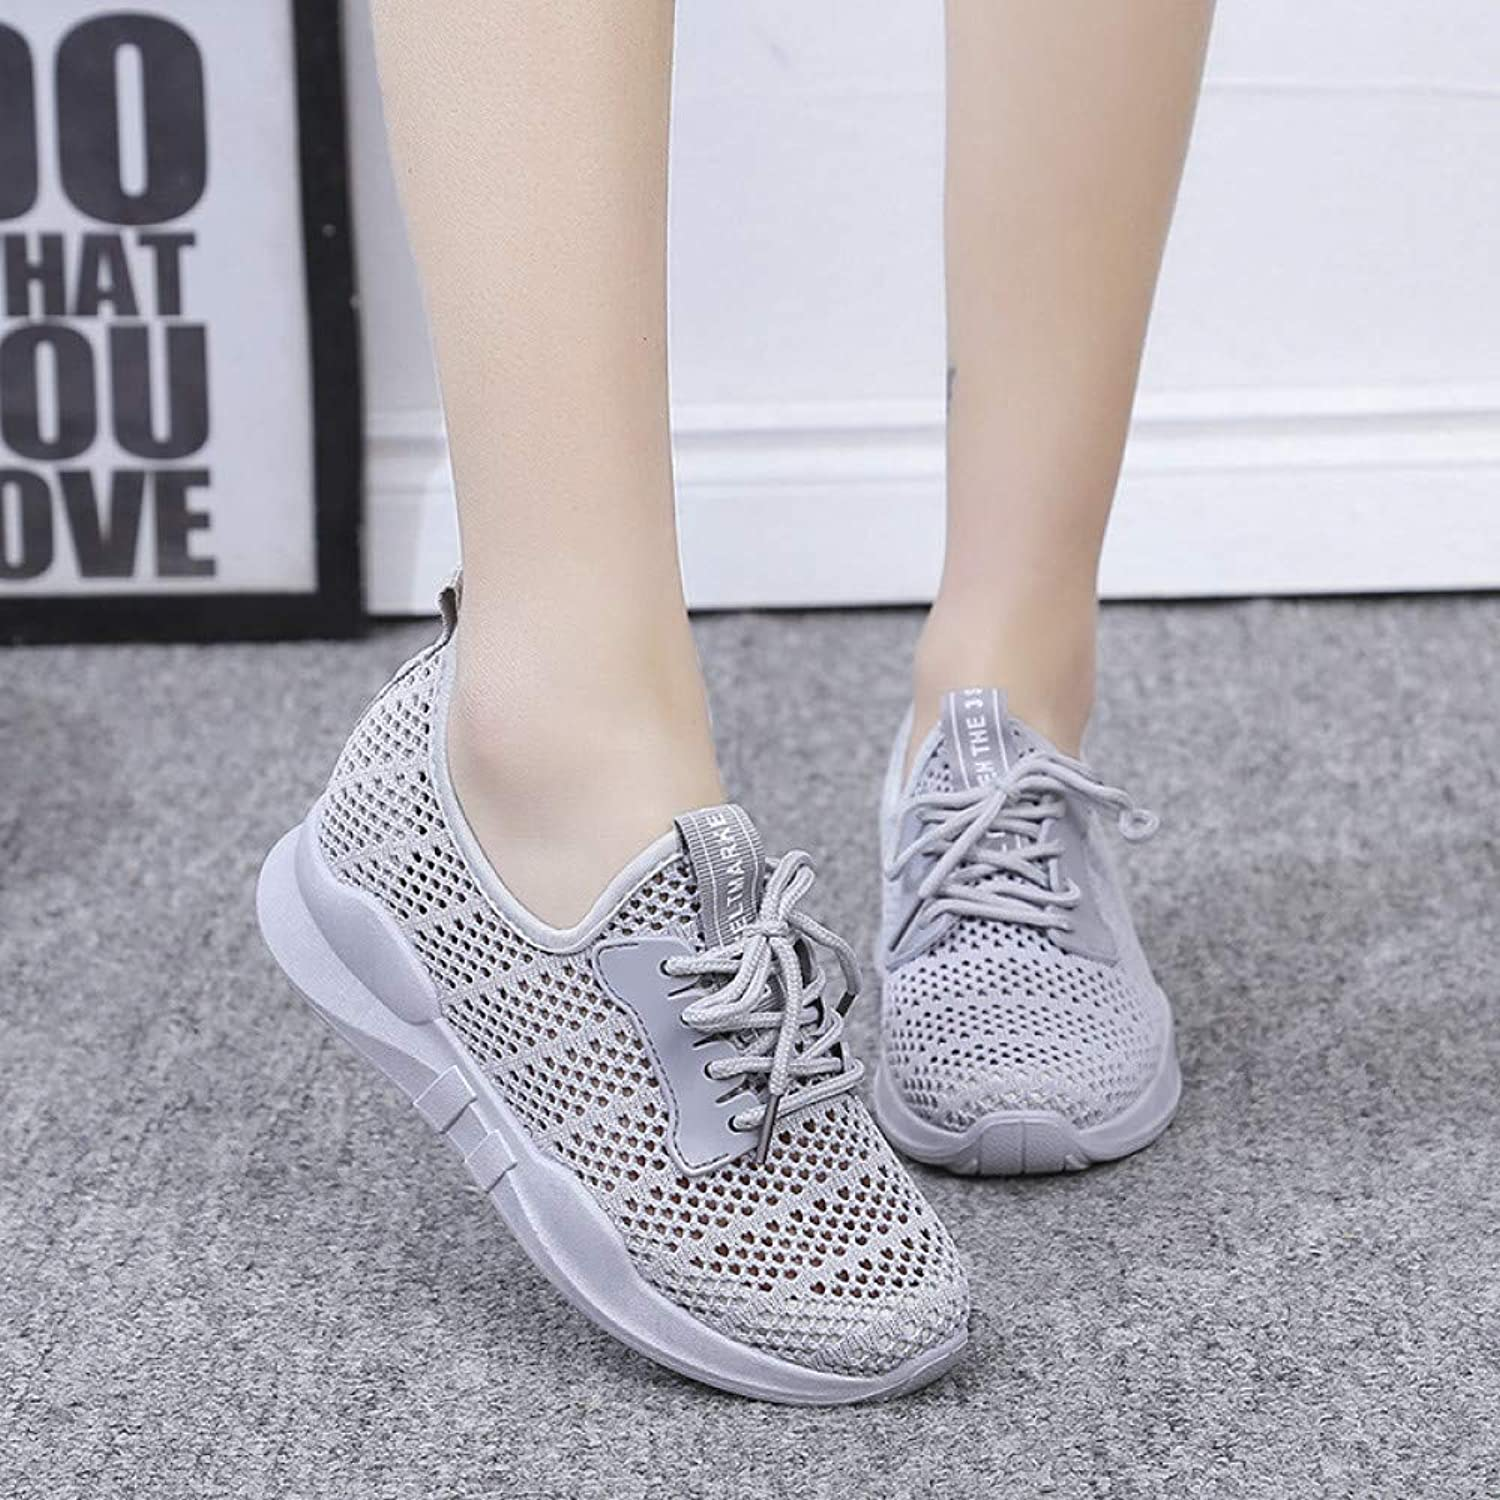 Hasag Sneakers New Women's Net shoes Flying Woven Cloth Perforated Breathable Casual shoes Couple Models Men's shoes